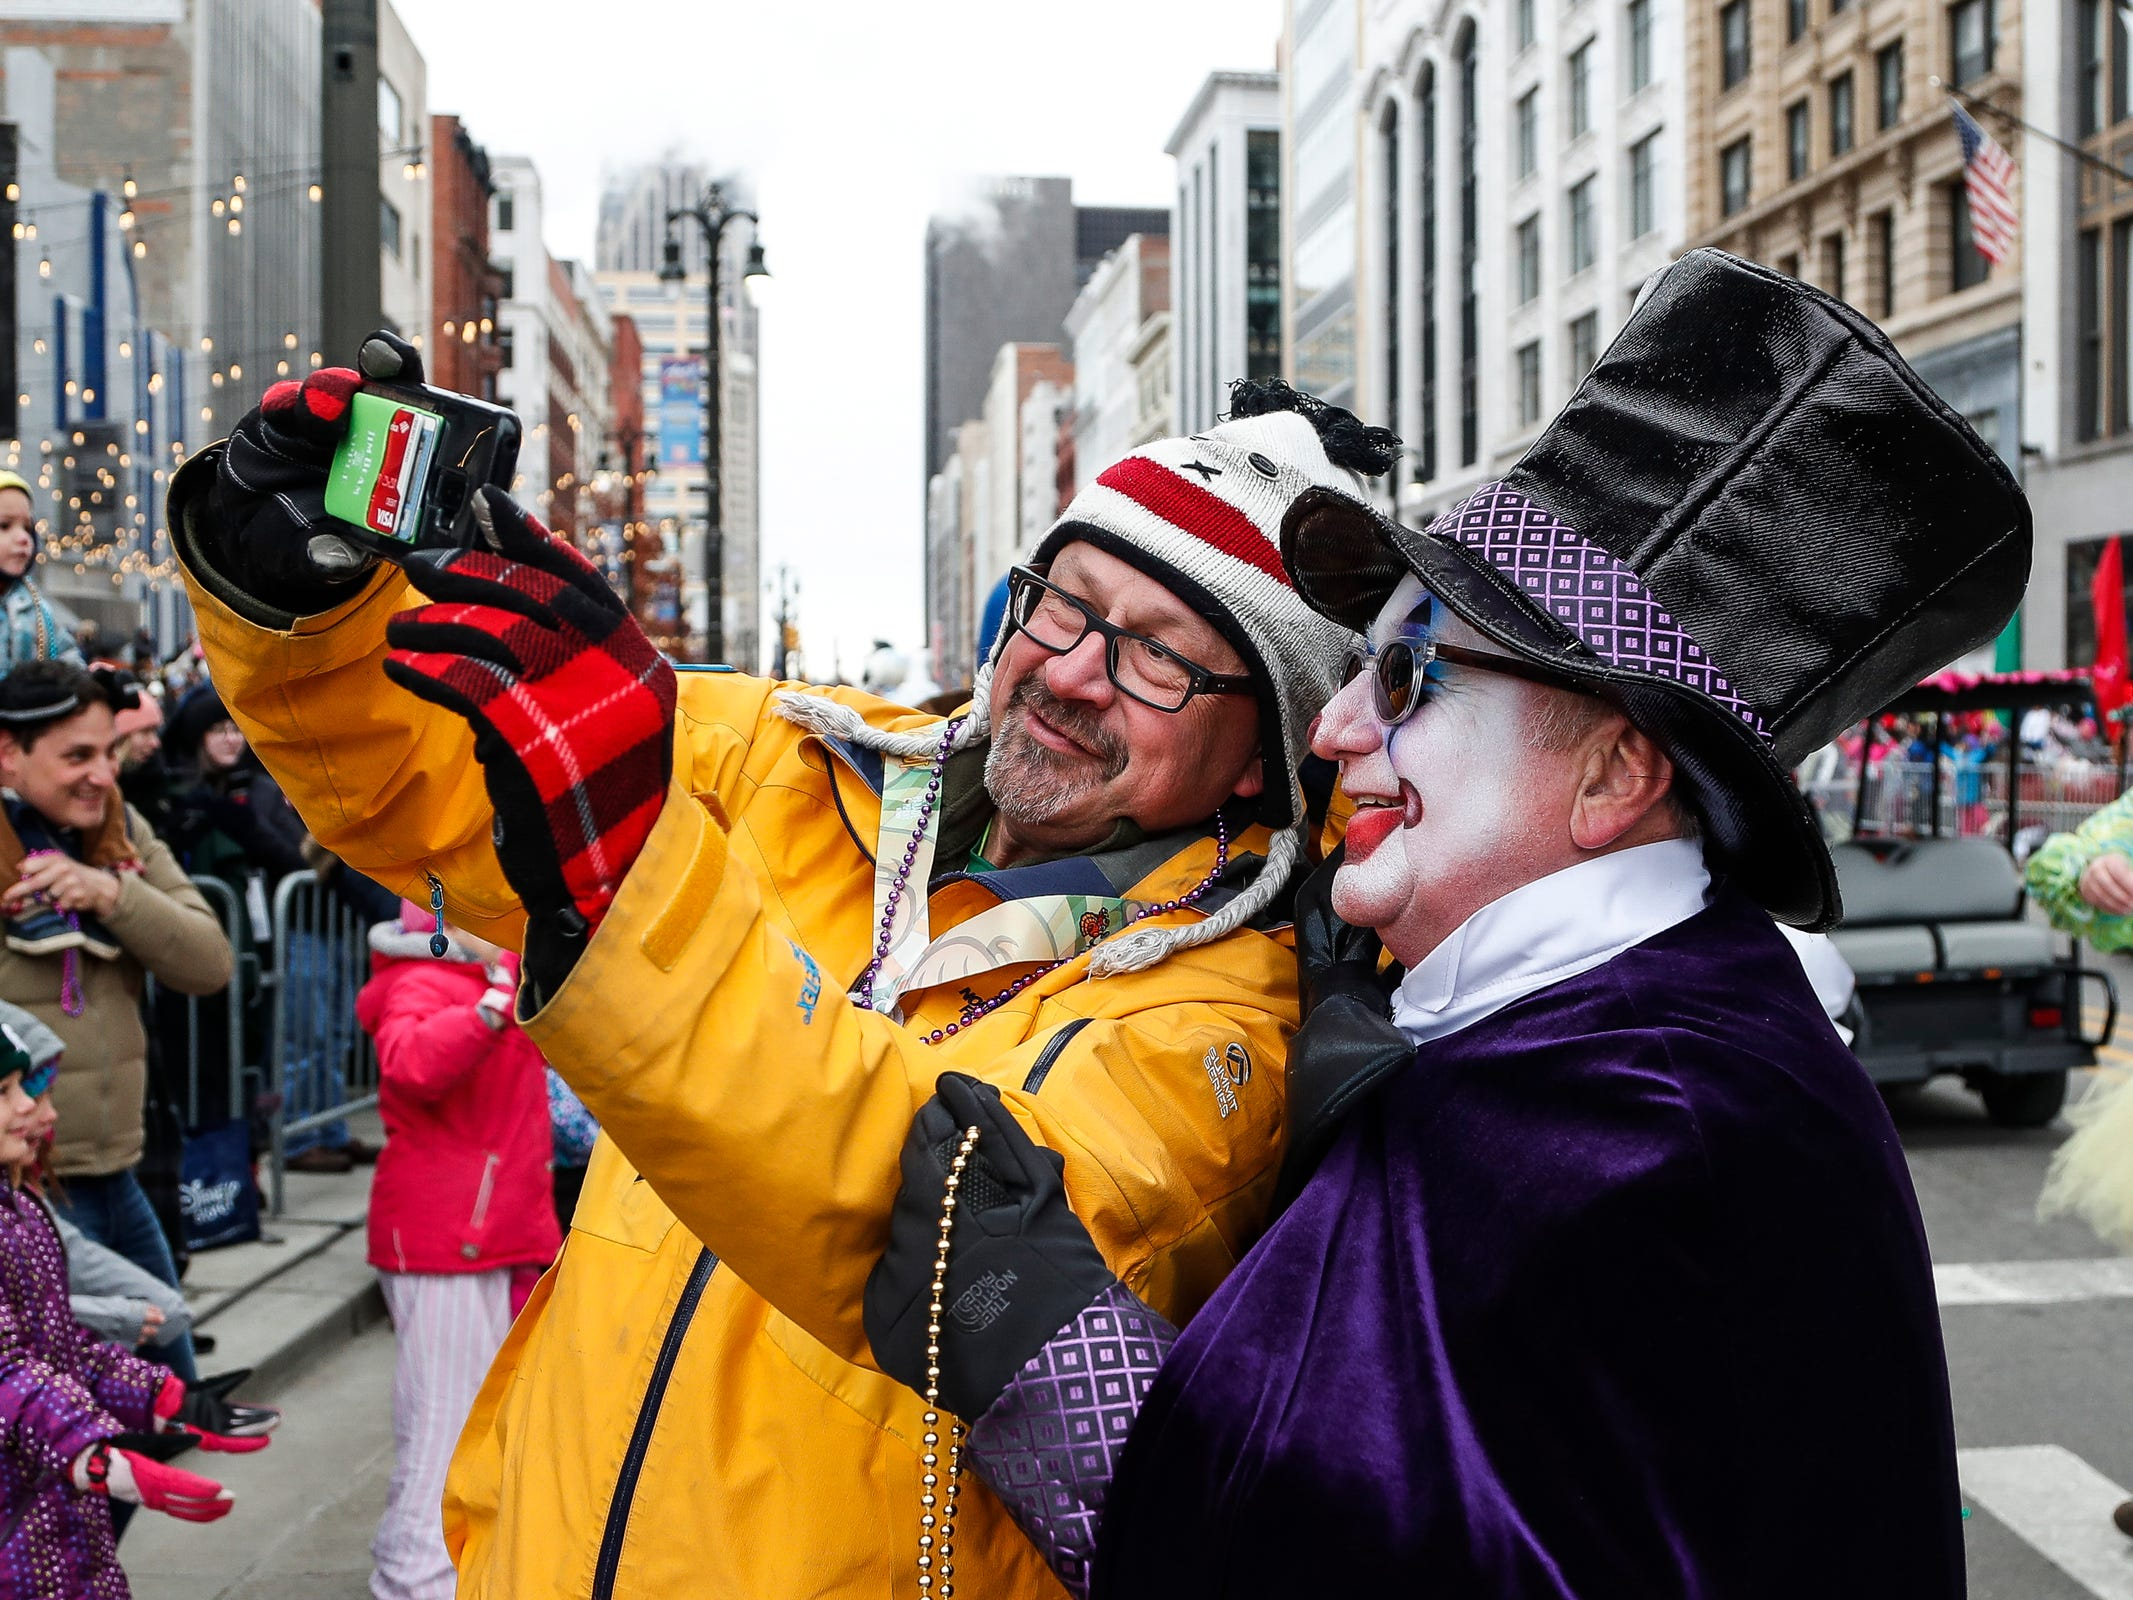 David Haener of New Boston takes a selfie with a clown during the 92nd America's Thanksgiving Day Parade in Detroit, Thursday, Nov. 22, 2018.